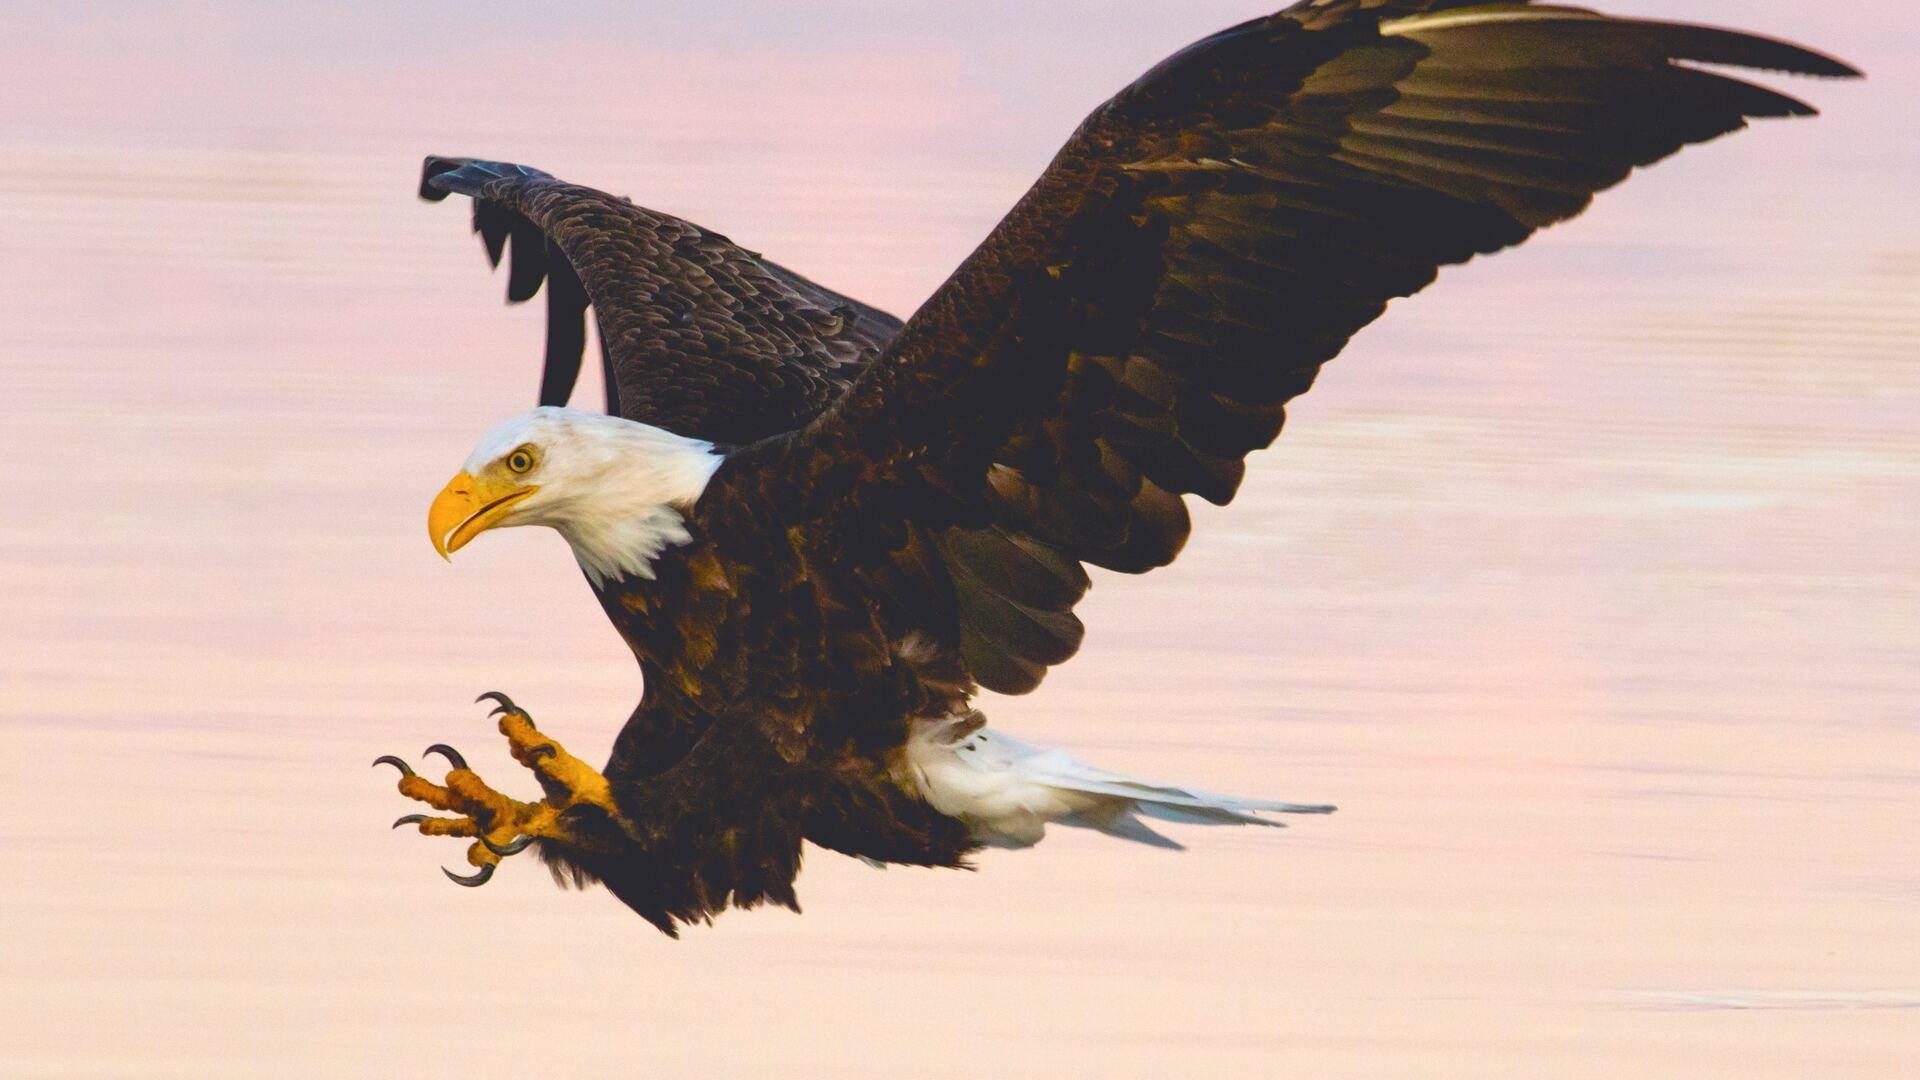 soaring-eagle-over-water-body-et.jpg